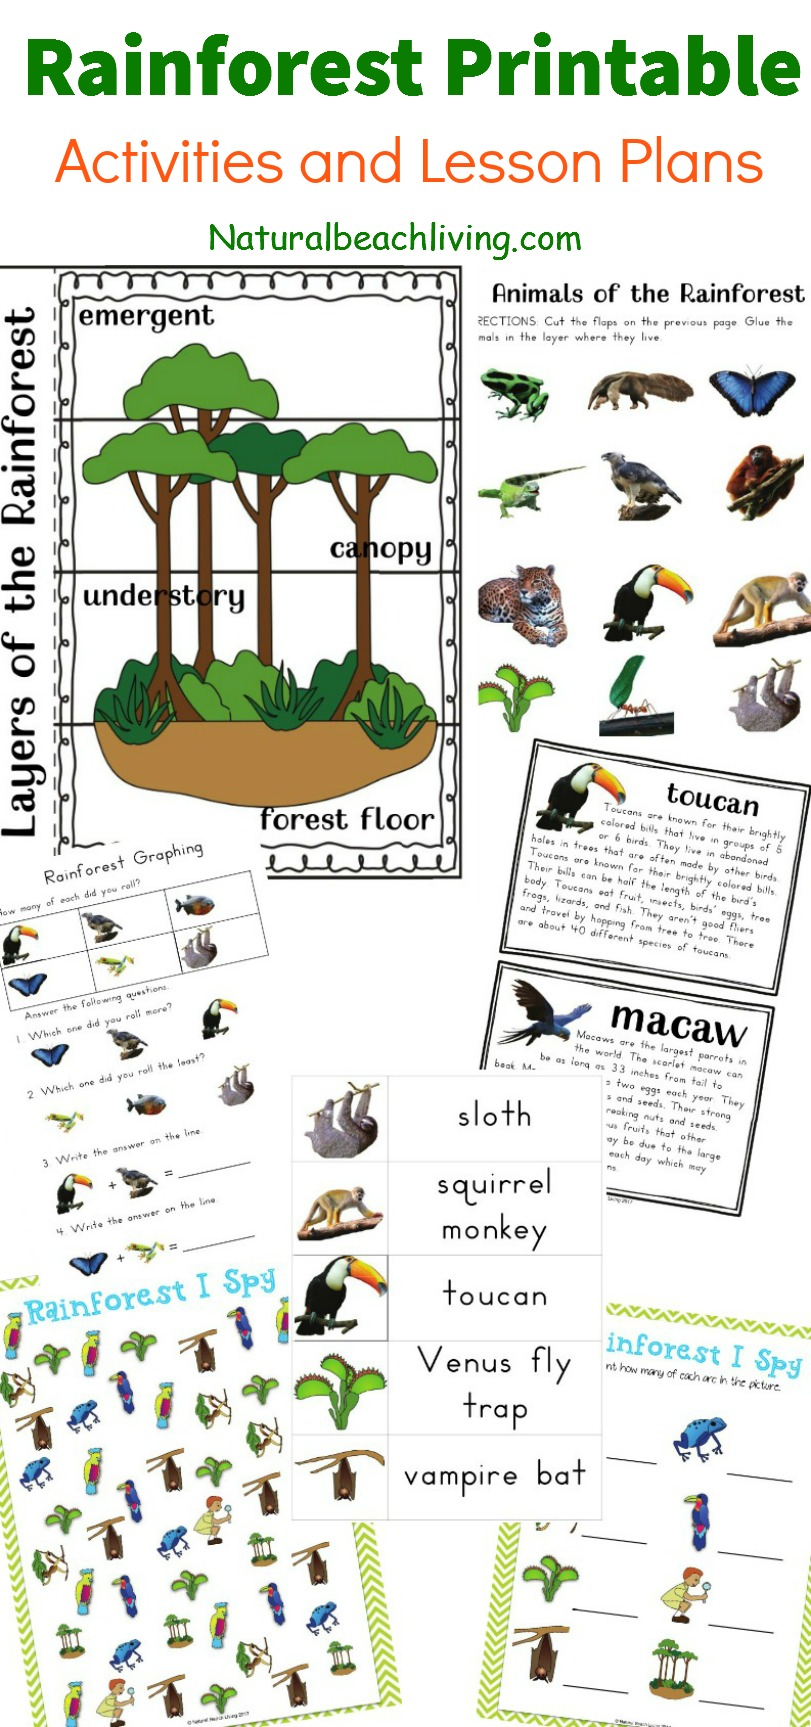 the best rainforest printable activities perfect for a rainforest theme unit study kids activities